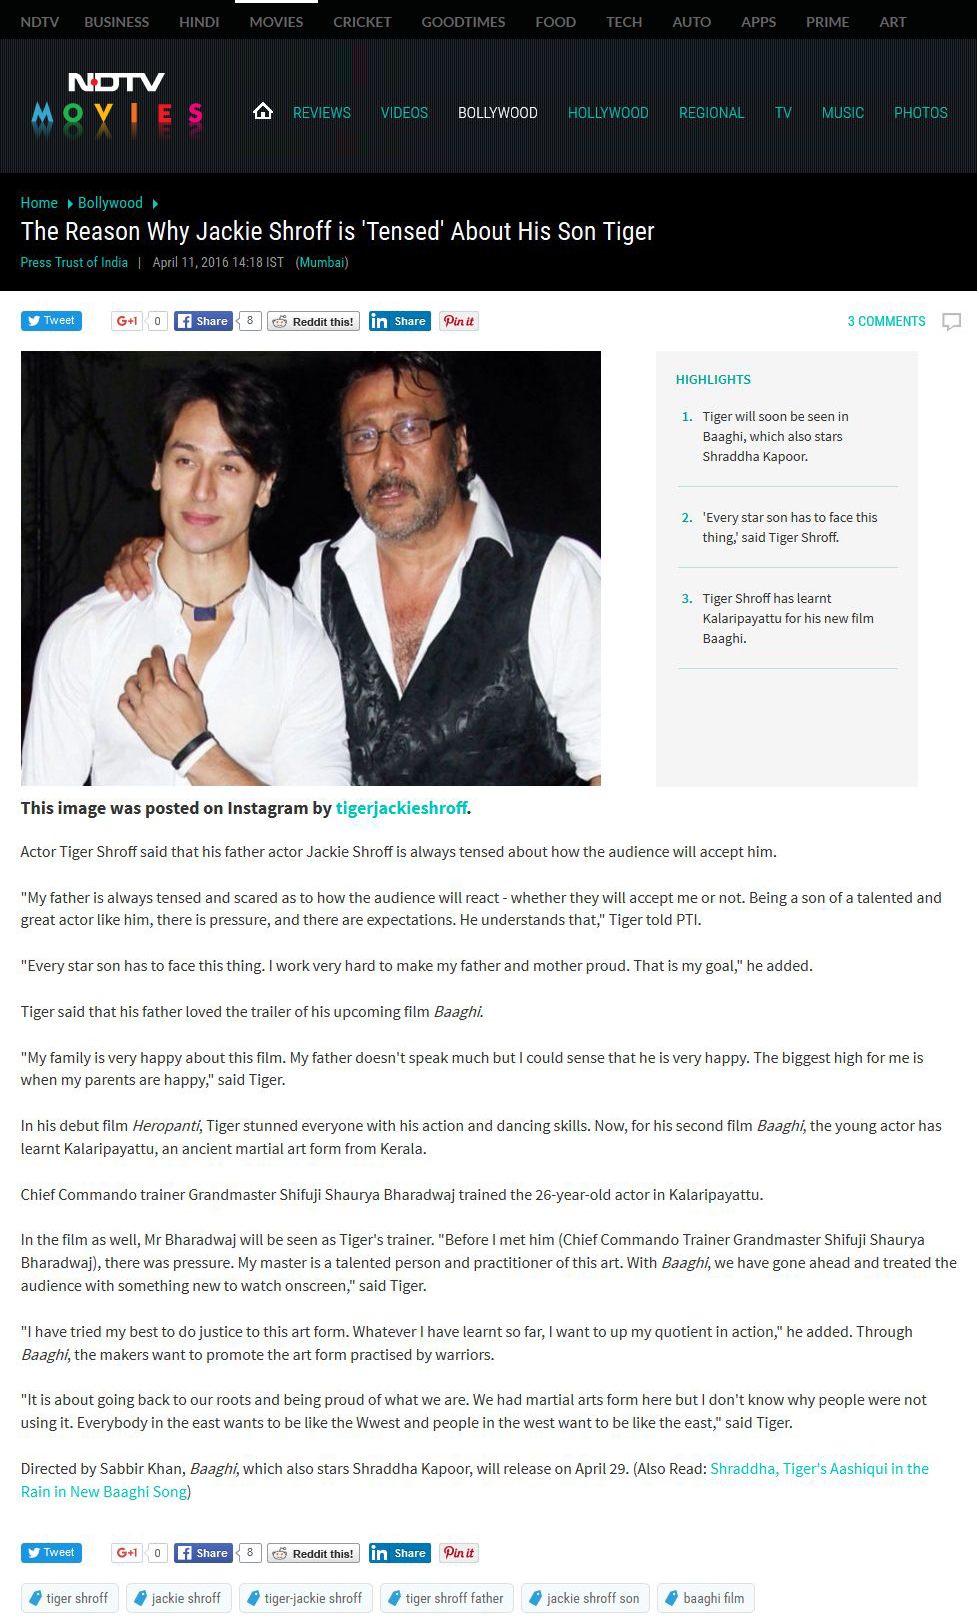 The Reason Why Jackie Shroff is Tensed About His Son Tiger